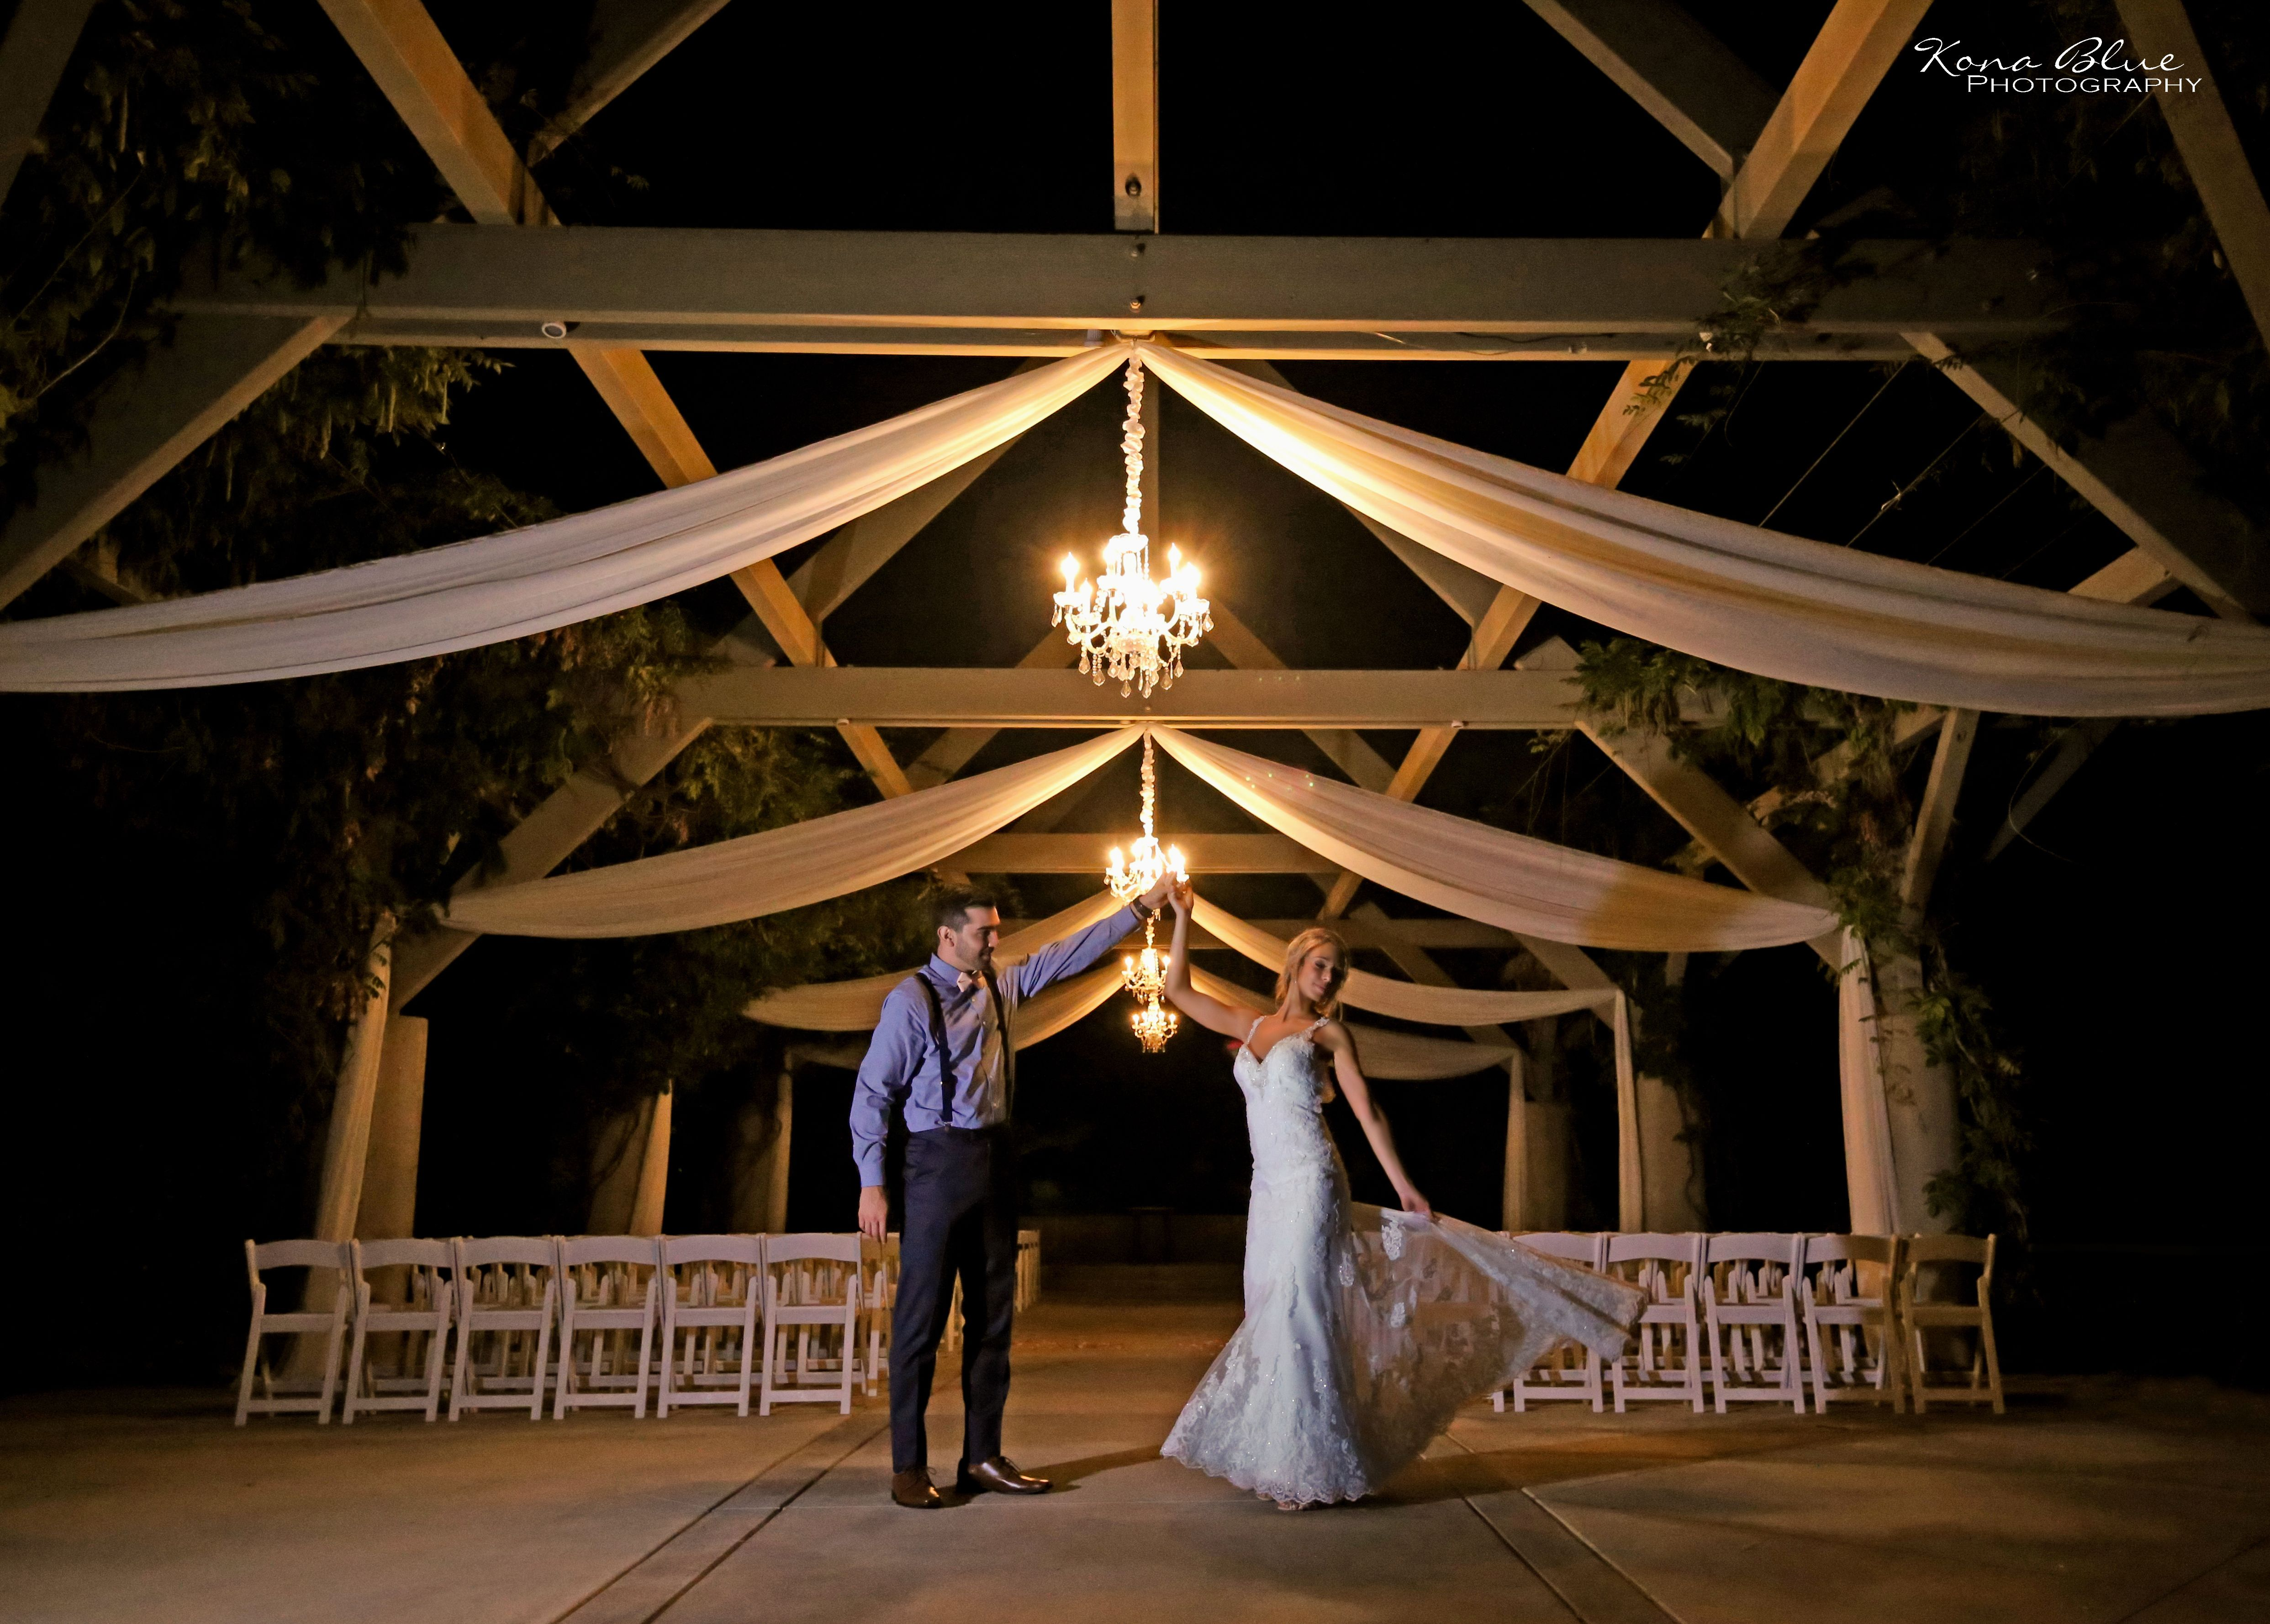 A Beautiful Wedding At Coyote Hills Golf Course Photography Ideas Outdoor Orange County Pea Affordable Wedding Photography Photography Wedding Photography